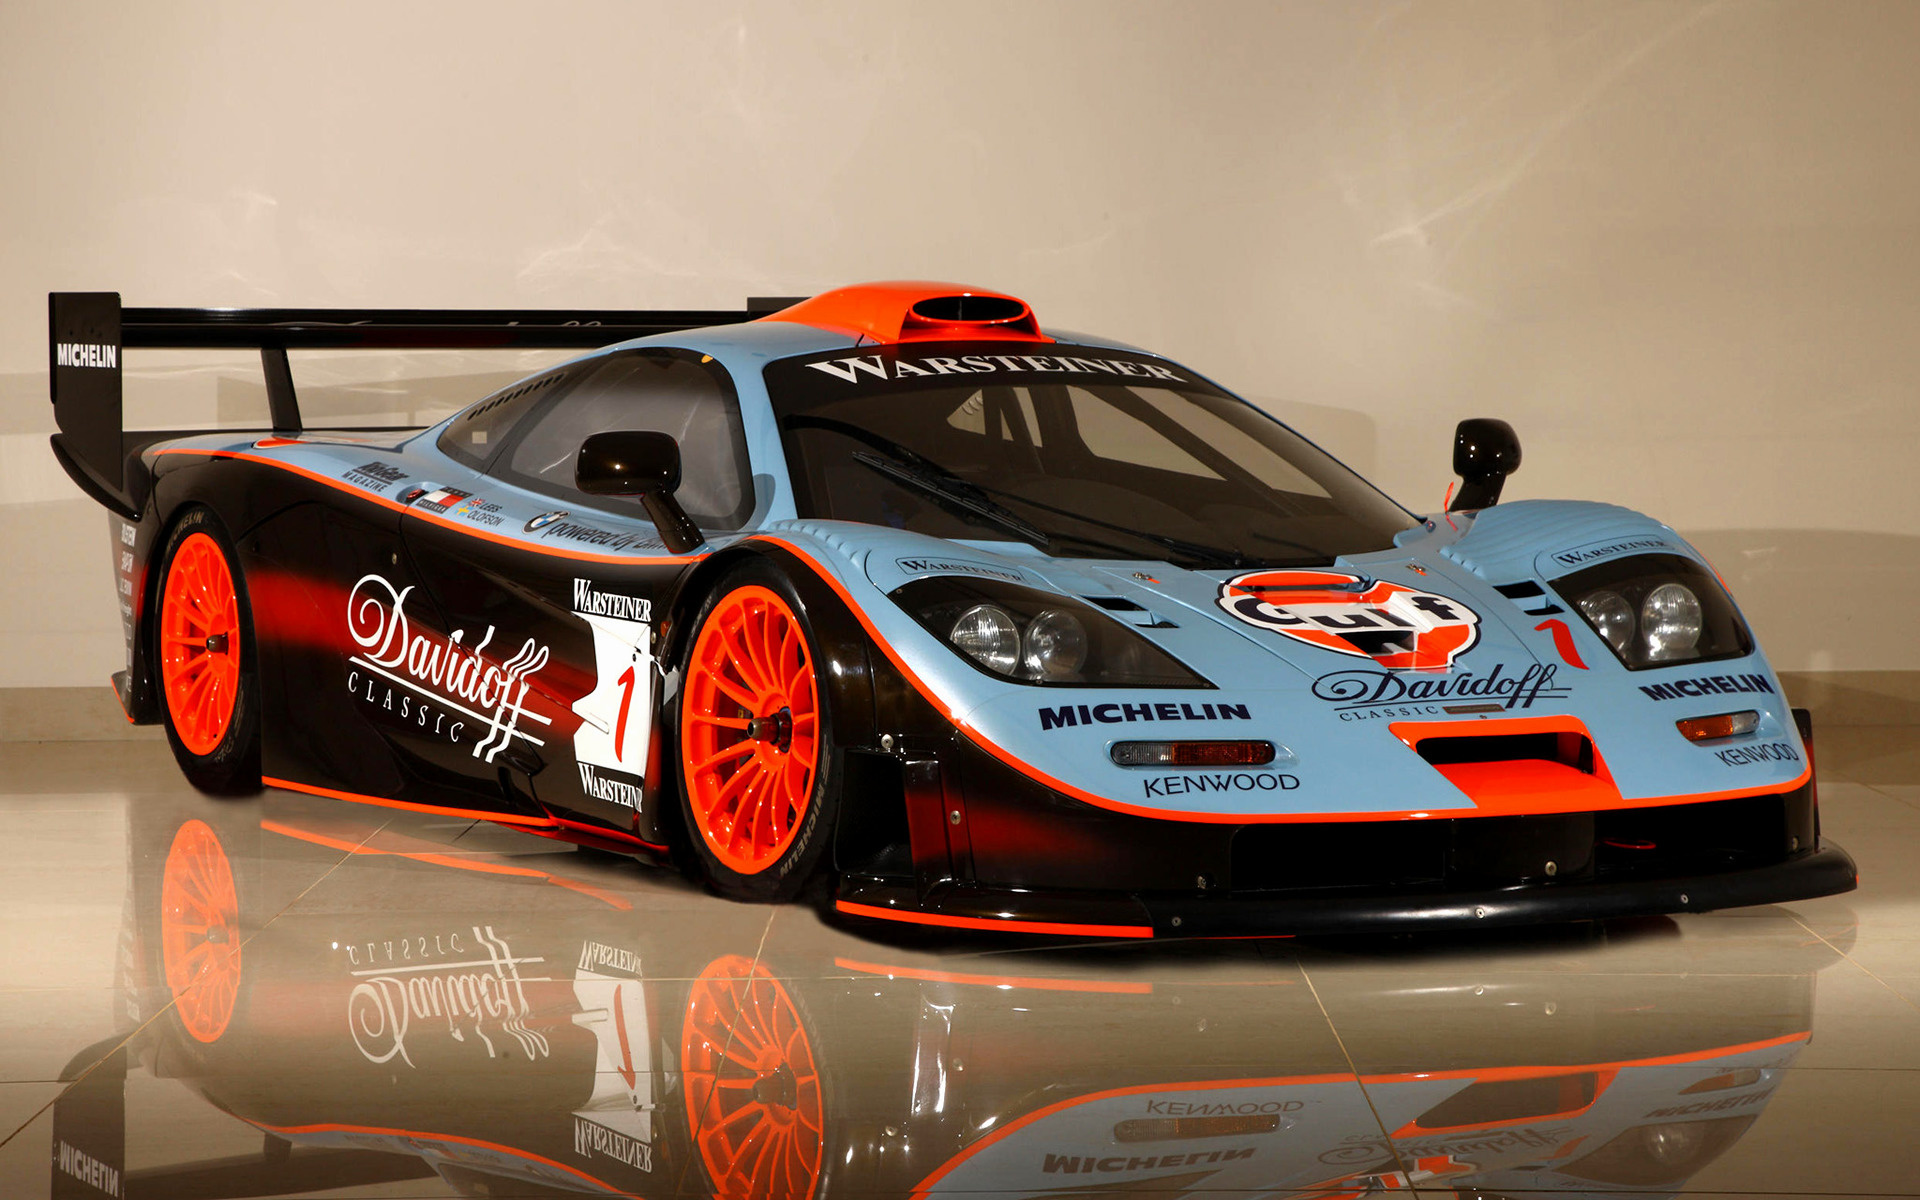 Race Car Wallpaper Images 1997 Mclaren F1 Gtr Long Tail Wallpapers And Hd Images